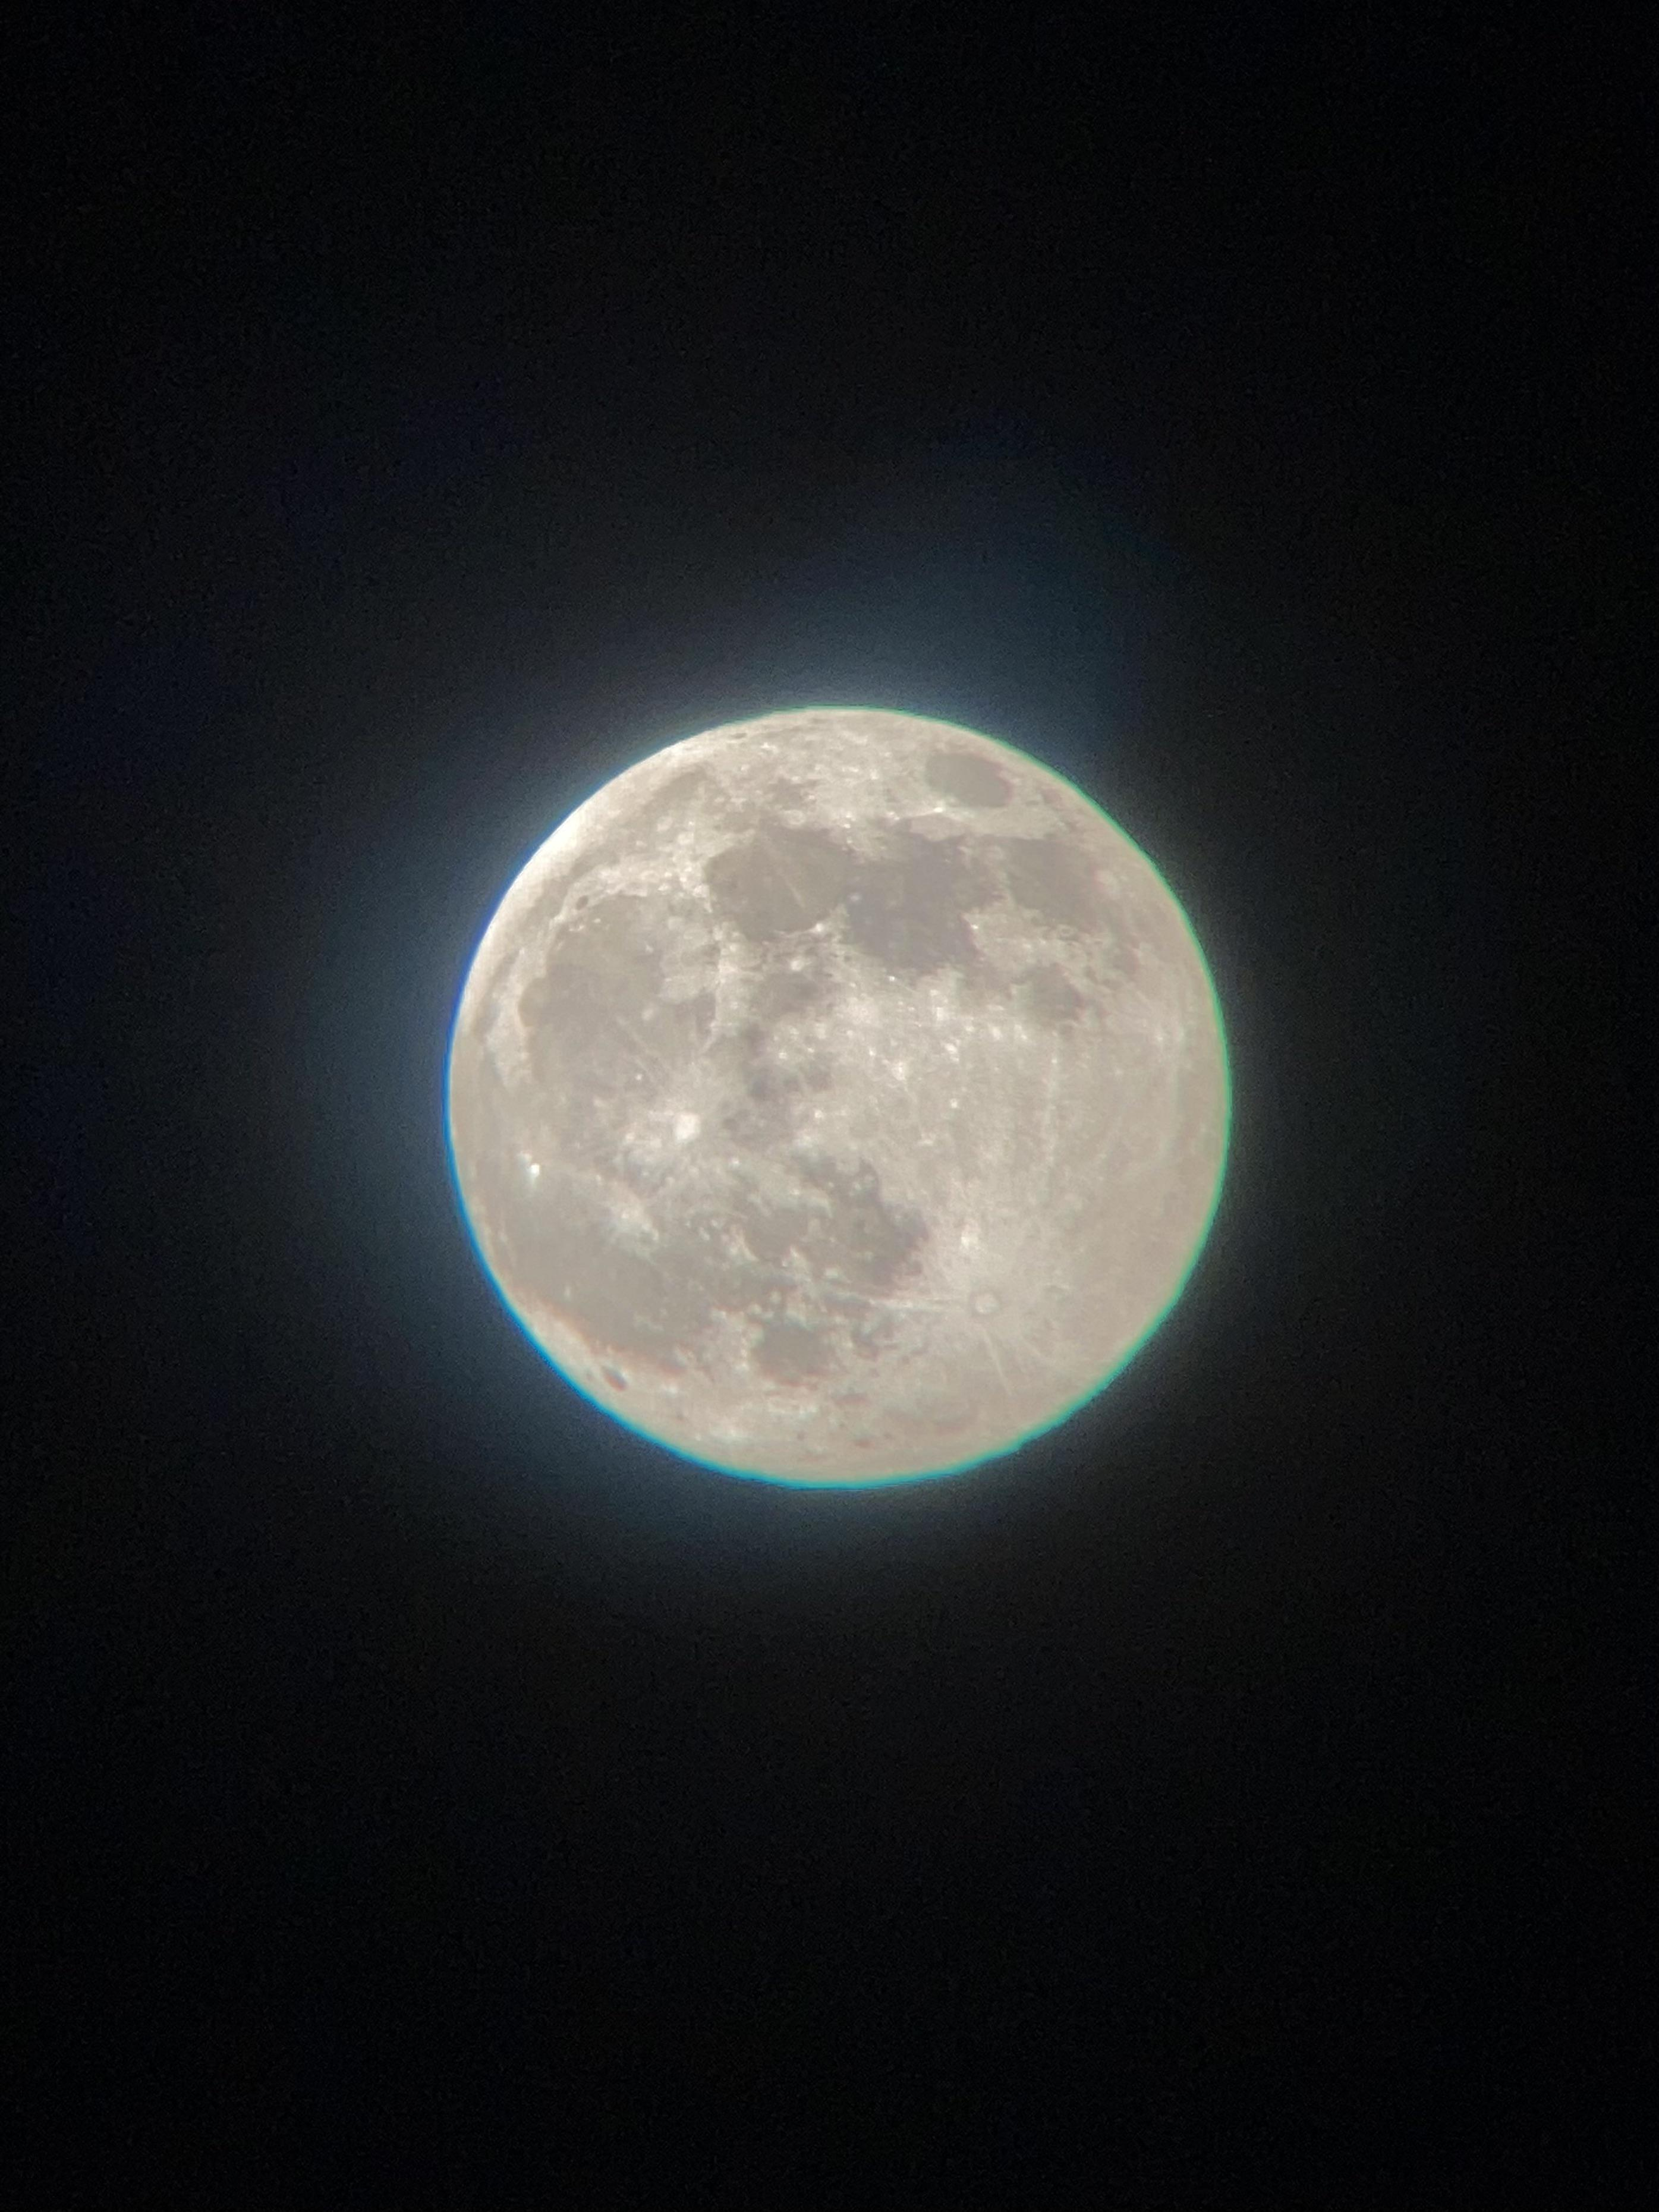 The best picture of the moon I (15F) have taken so far! - 26.04.21